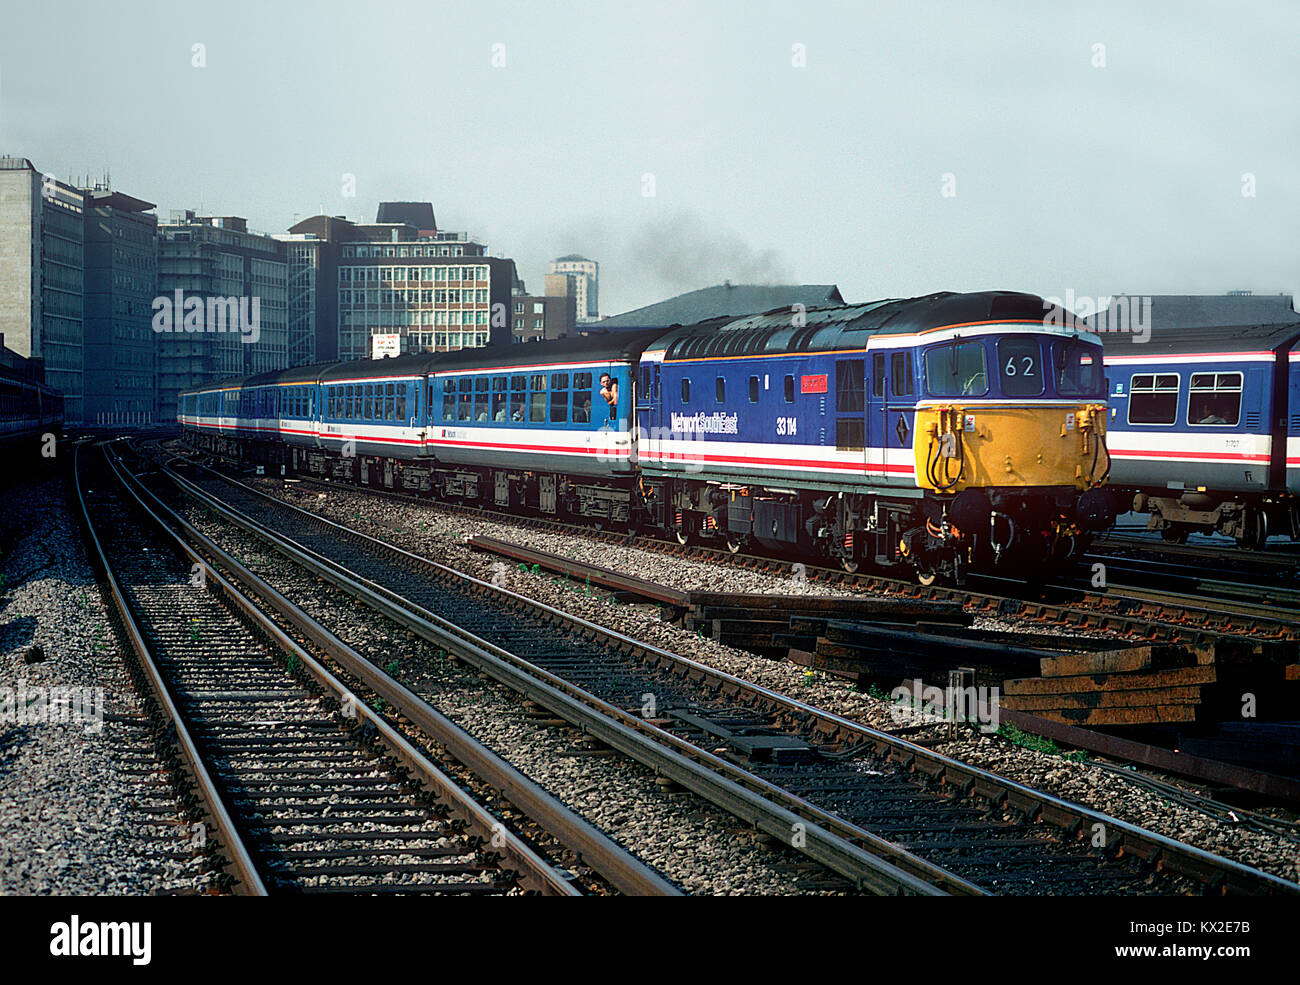 """In May 1992 33114 was repainted into Network SouthEast colours and named """"Ashford 150"""". The celebrity Crompton is seen working a """"Network Express"""" service at Vauxhall. 29th July 1992. Stock Photo"""